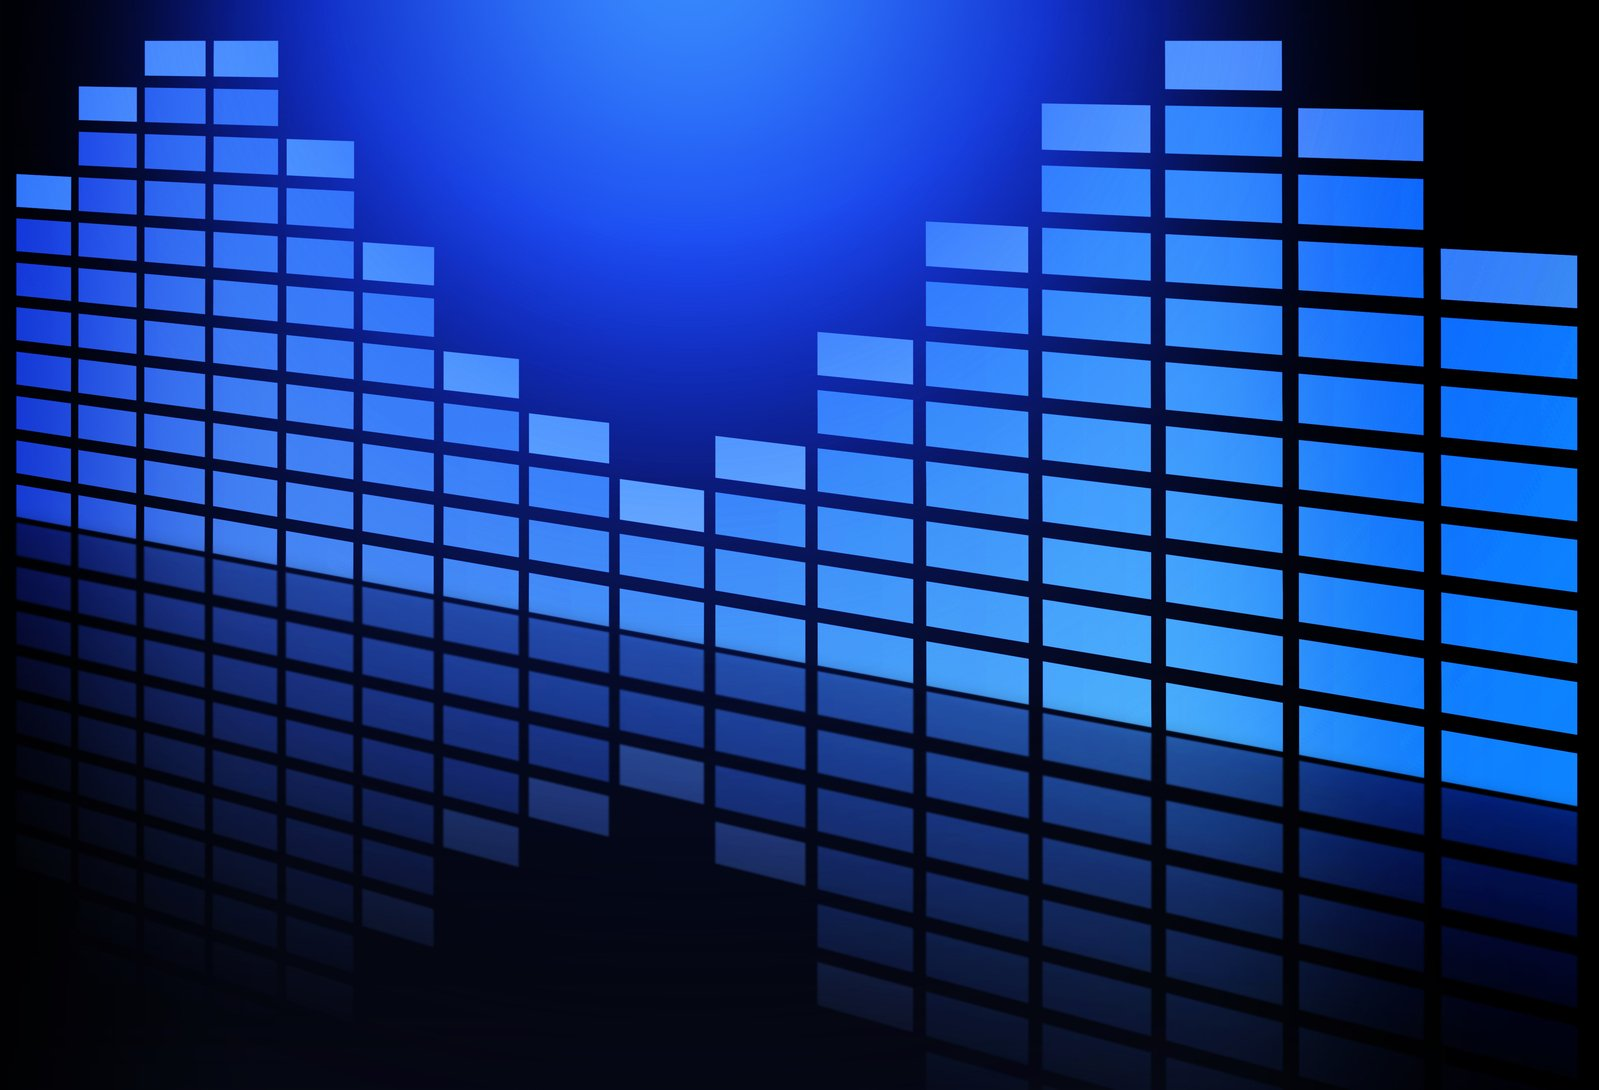 Free graphic equalizer Stock Photo - FreeImages com